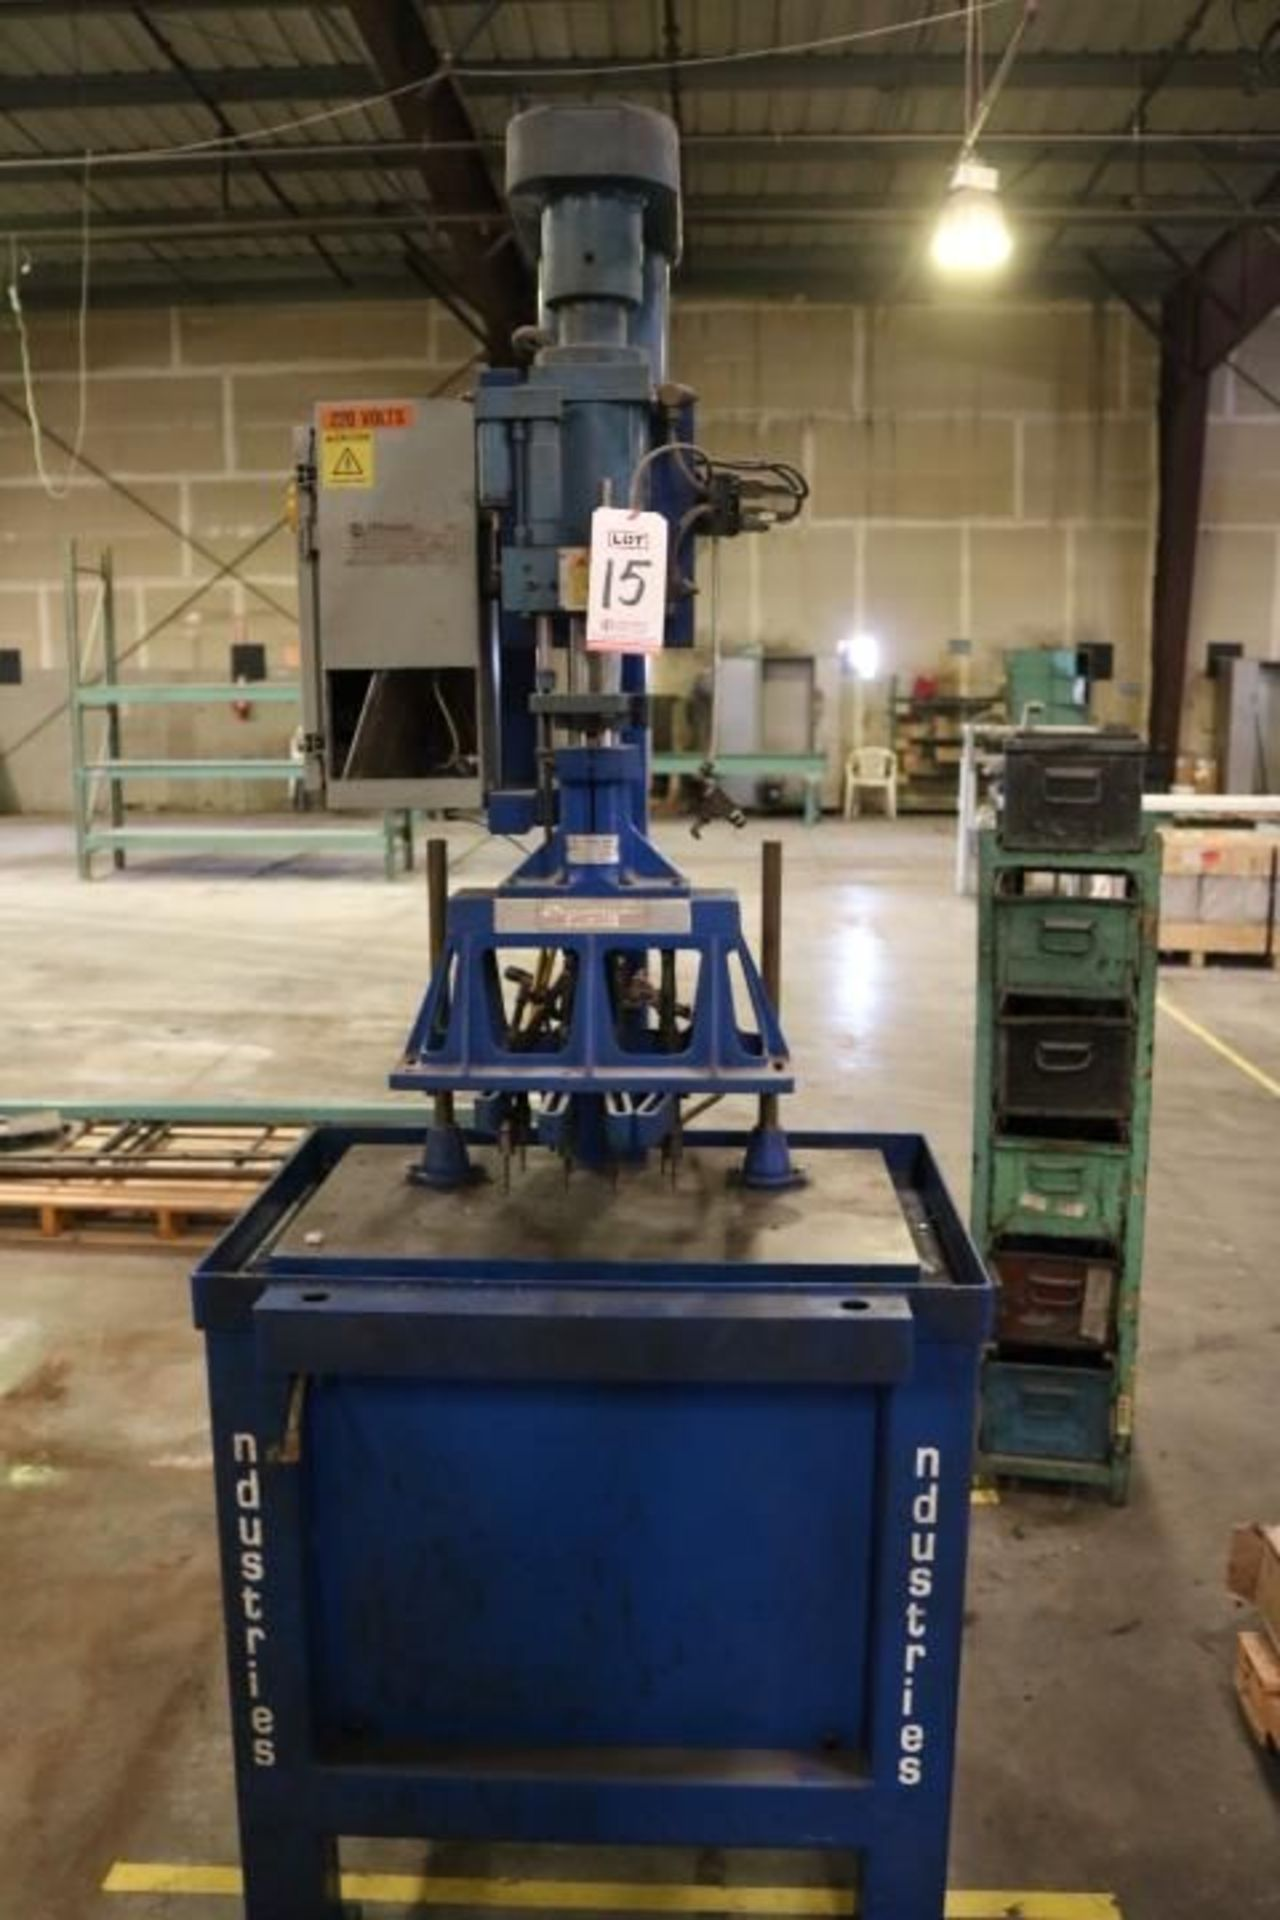 Lot 15 - JRI MULTI-DRILL, (CUSTOM MULTI-DRILL HEAD MACHINE), MODEL TRA03, 220 V, 3-PHASE, S/N MDM08081, (MADE